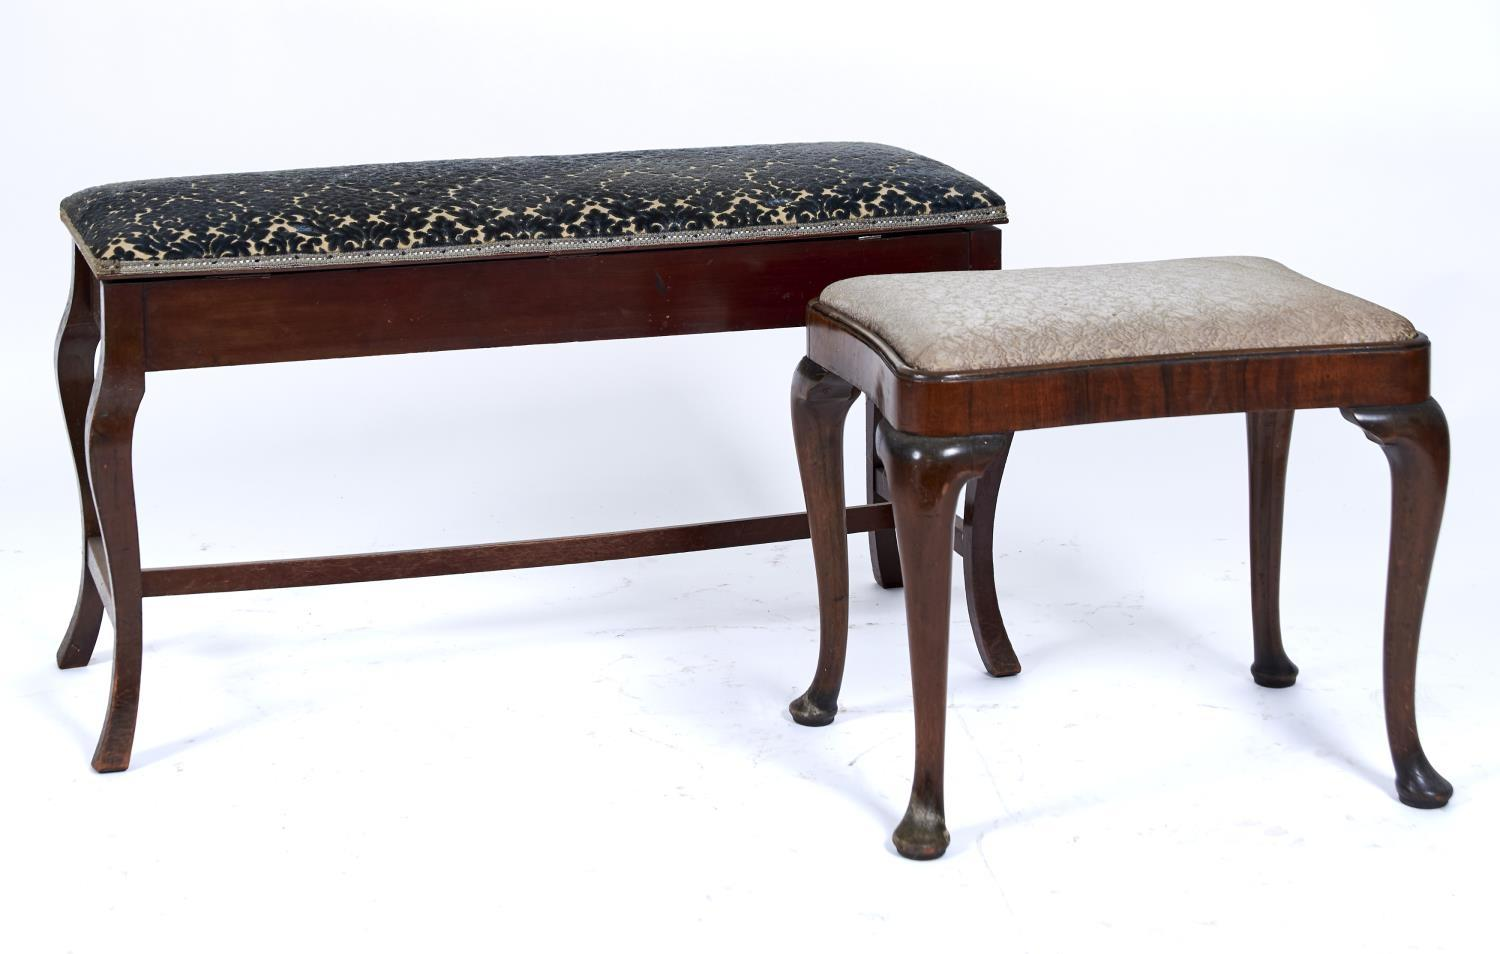 A LATE VICTORIAN MAHOGANY FRAMED DUET STOOL, THE STUFFED OVER UPHOLSTERED TOP IN BLUE MOQUETTE ON